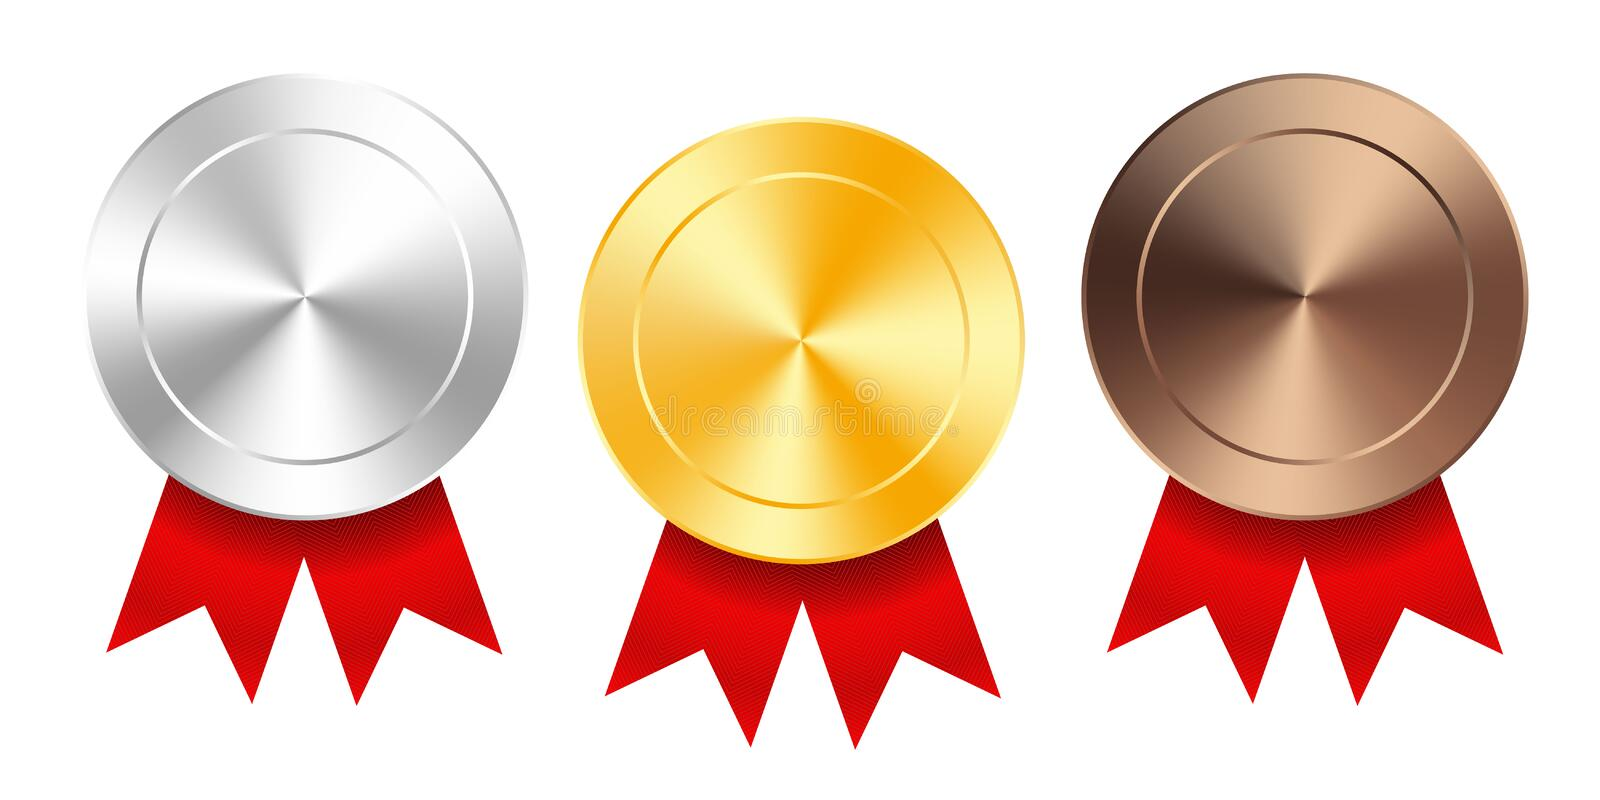 Set of gold, silver and bronze award medals with red ribbons. Medal round empty polished vector collection isolated on white stock illustration